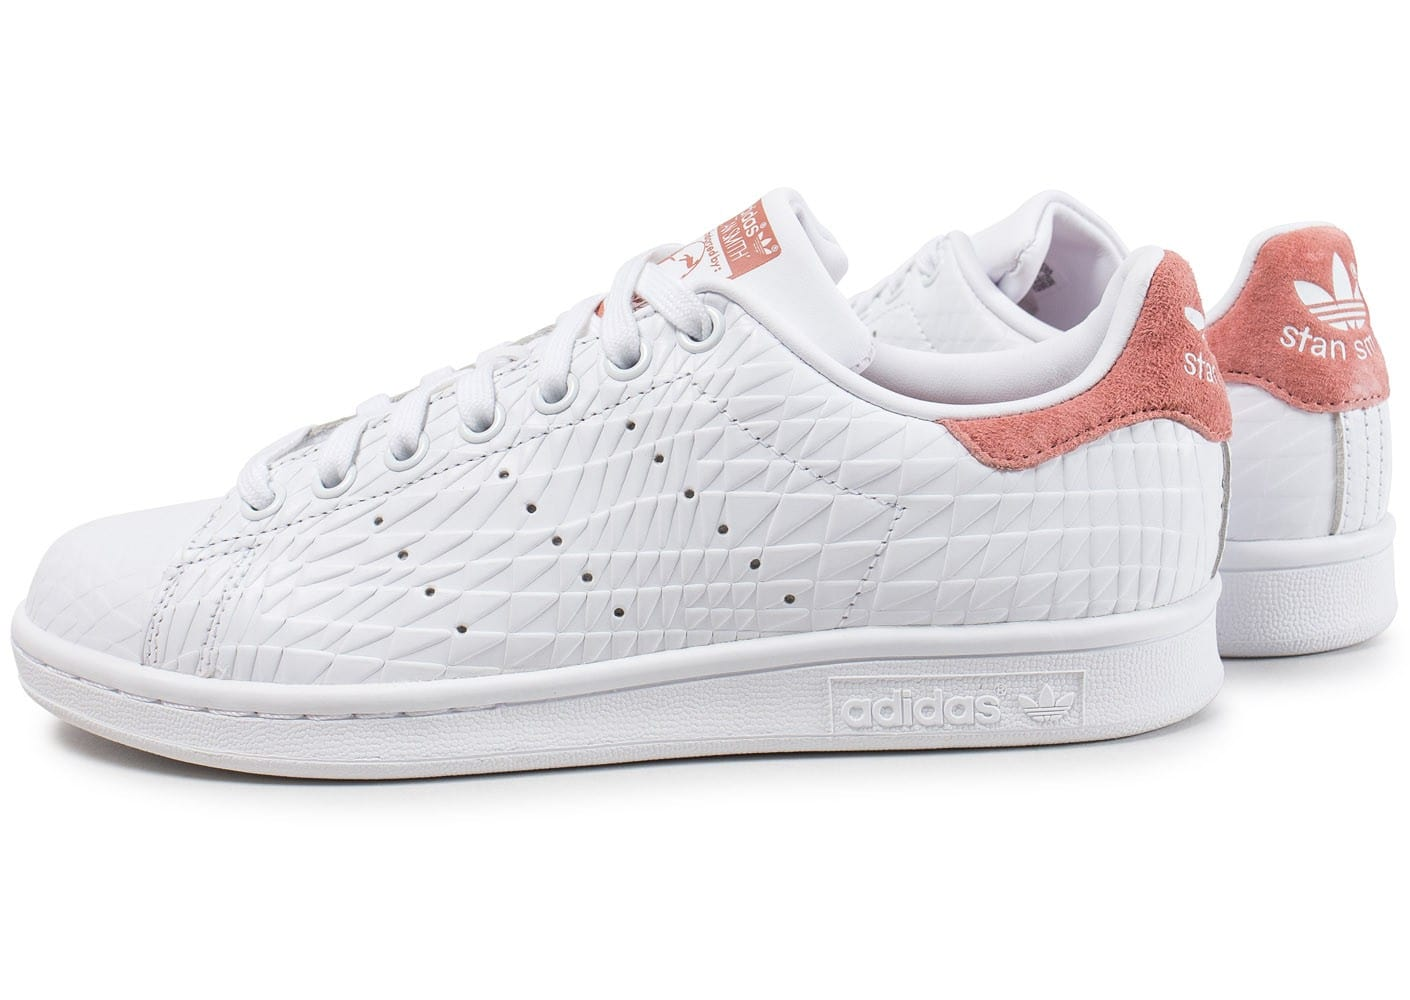 adidas stan smith triangle raw blanche et rose chaussures adidas chausport. Black Bedroom Furniture Sets. Home Design Ideas